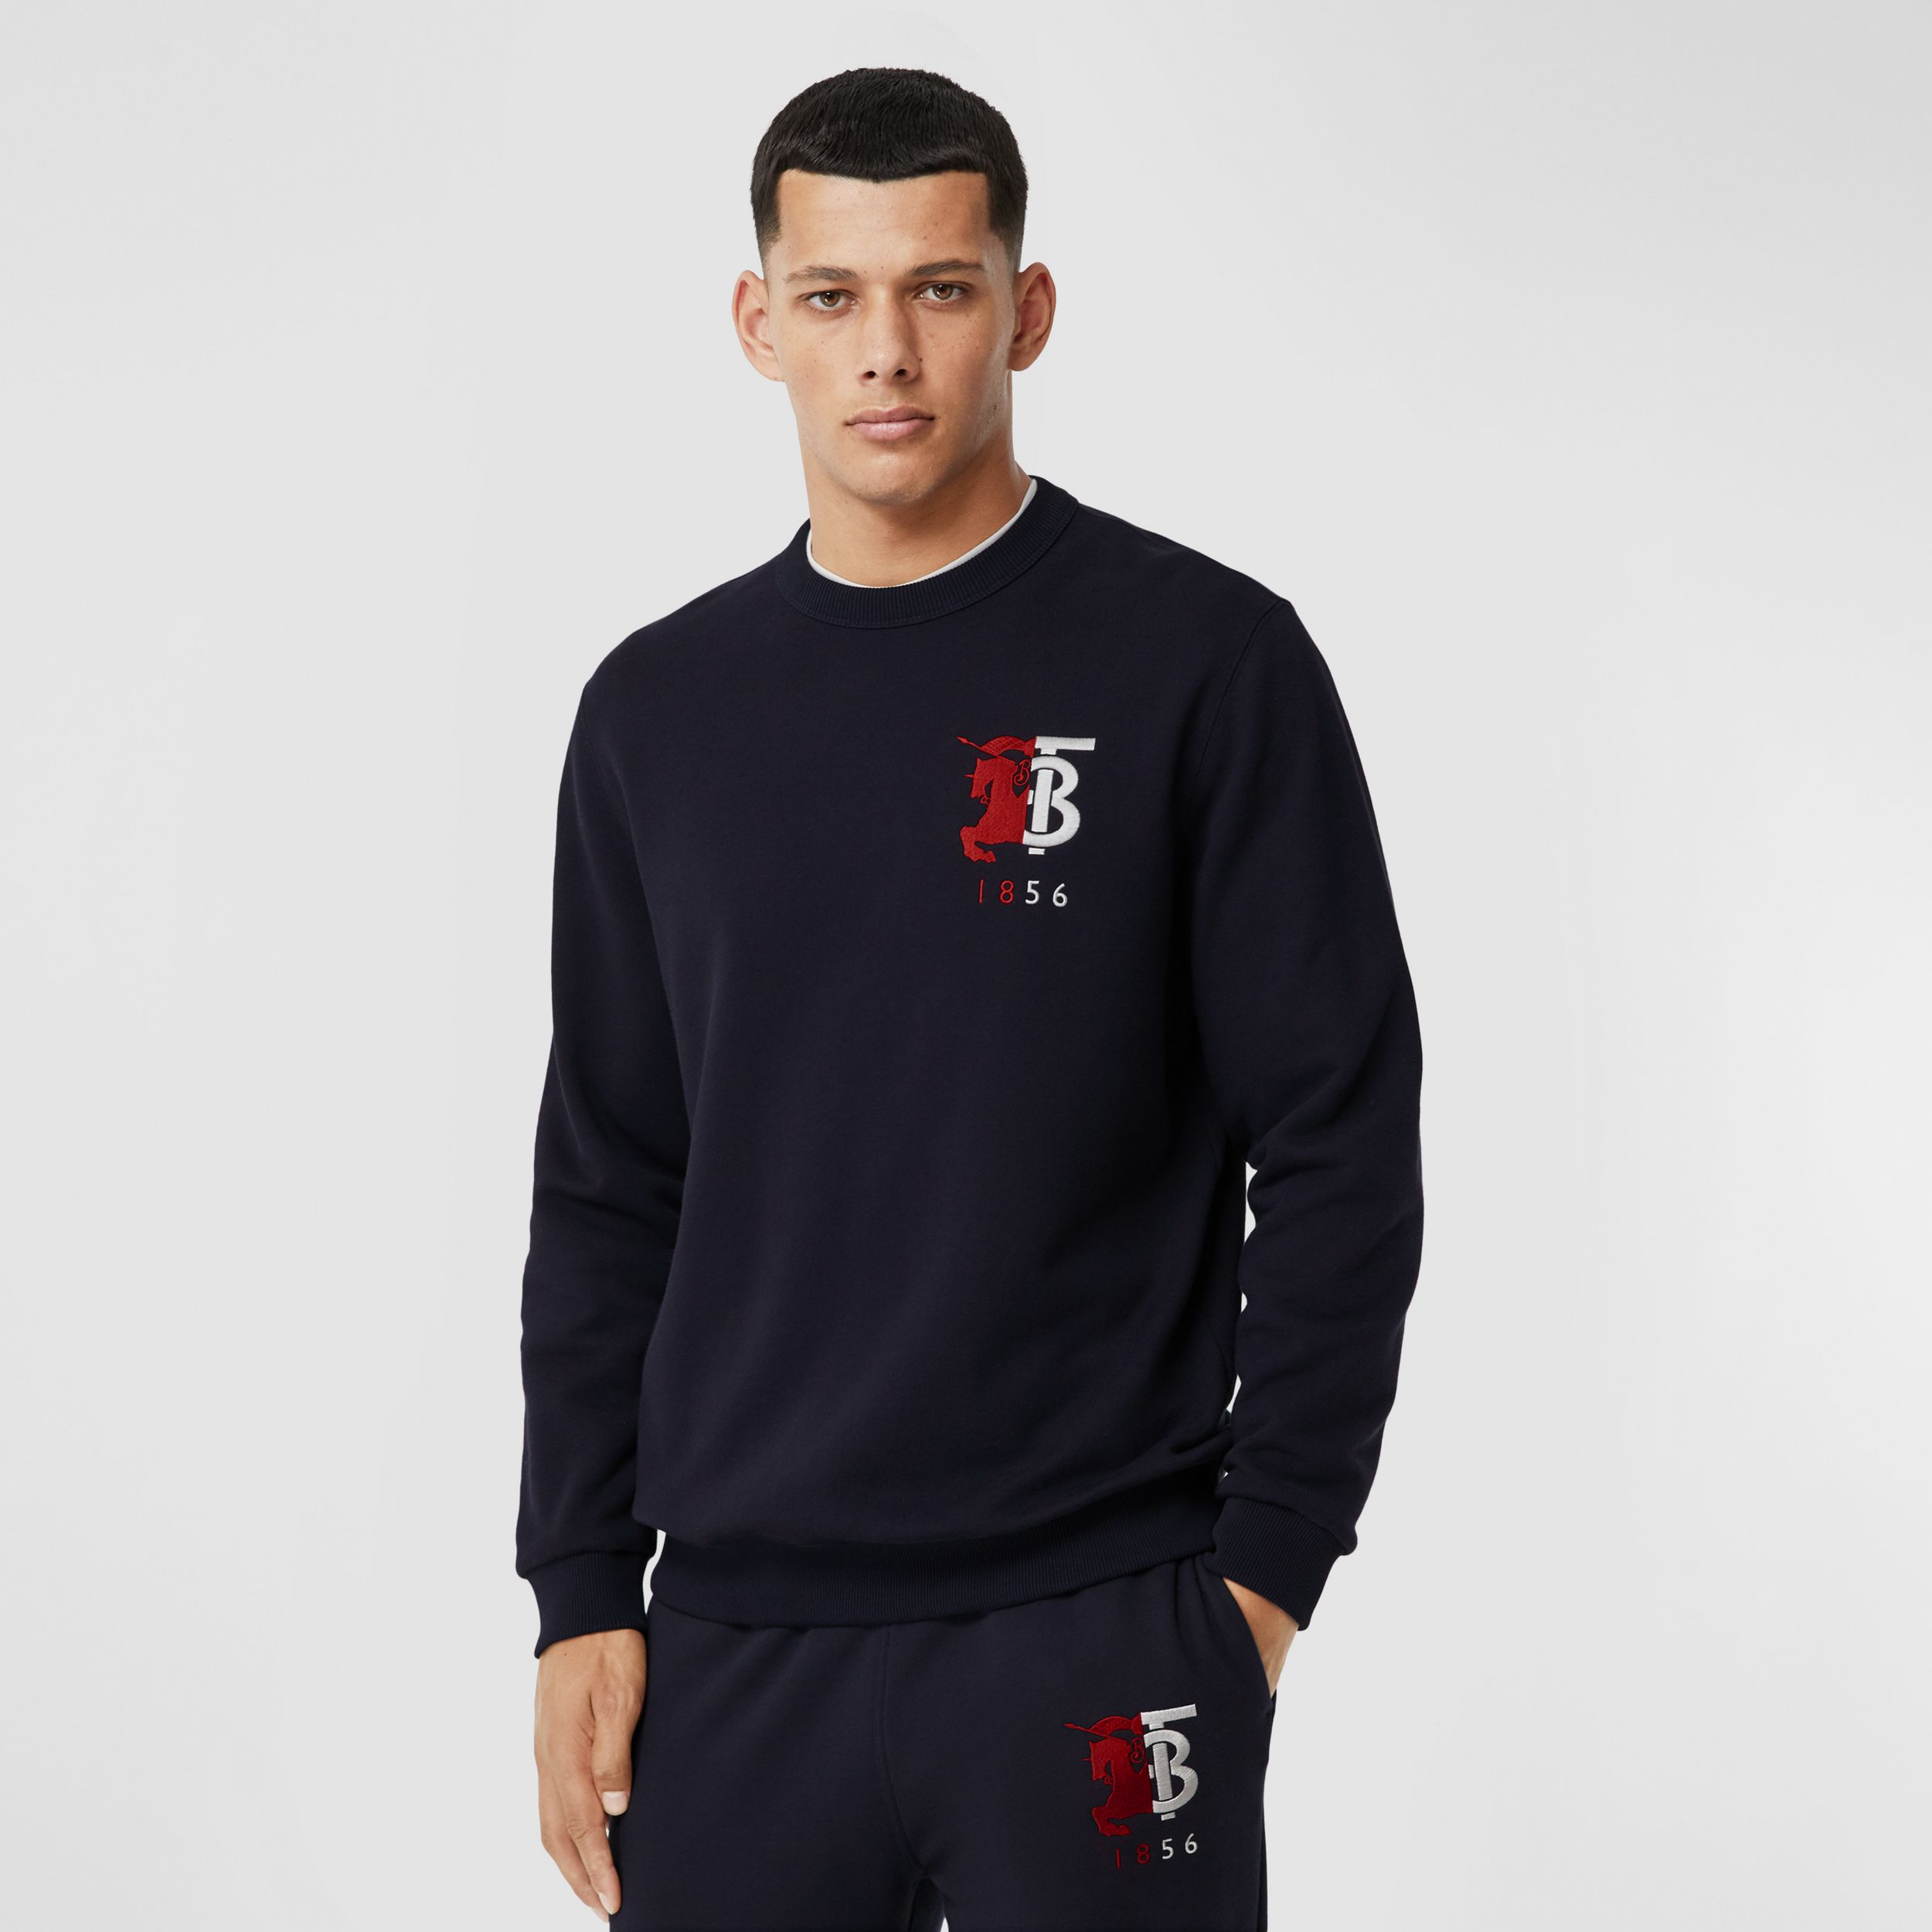 Contrast Logo Graphic Cotton Sweatshirt in Navy - Men | Burberry - 1